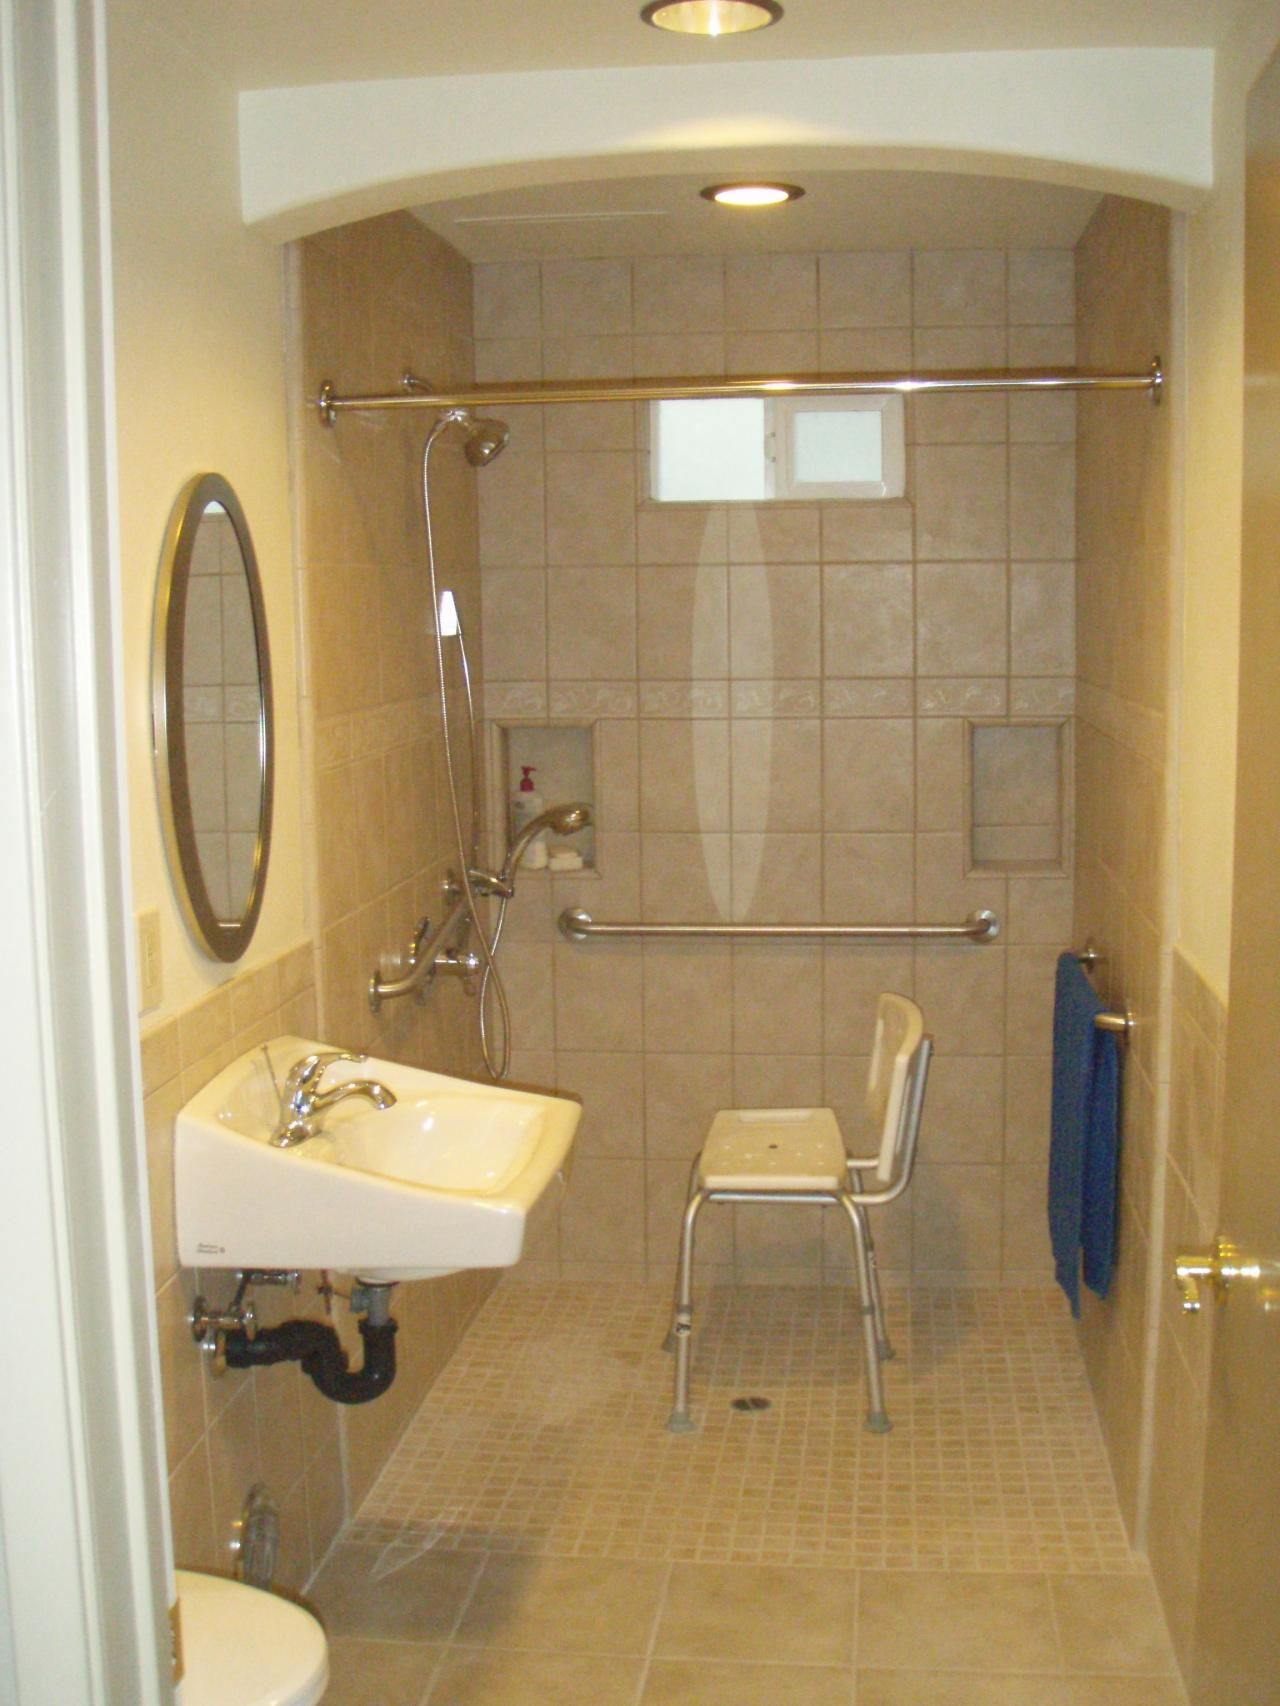 Bathroom Remodels For Handiced Ms Hayashi Torrance 11 09